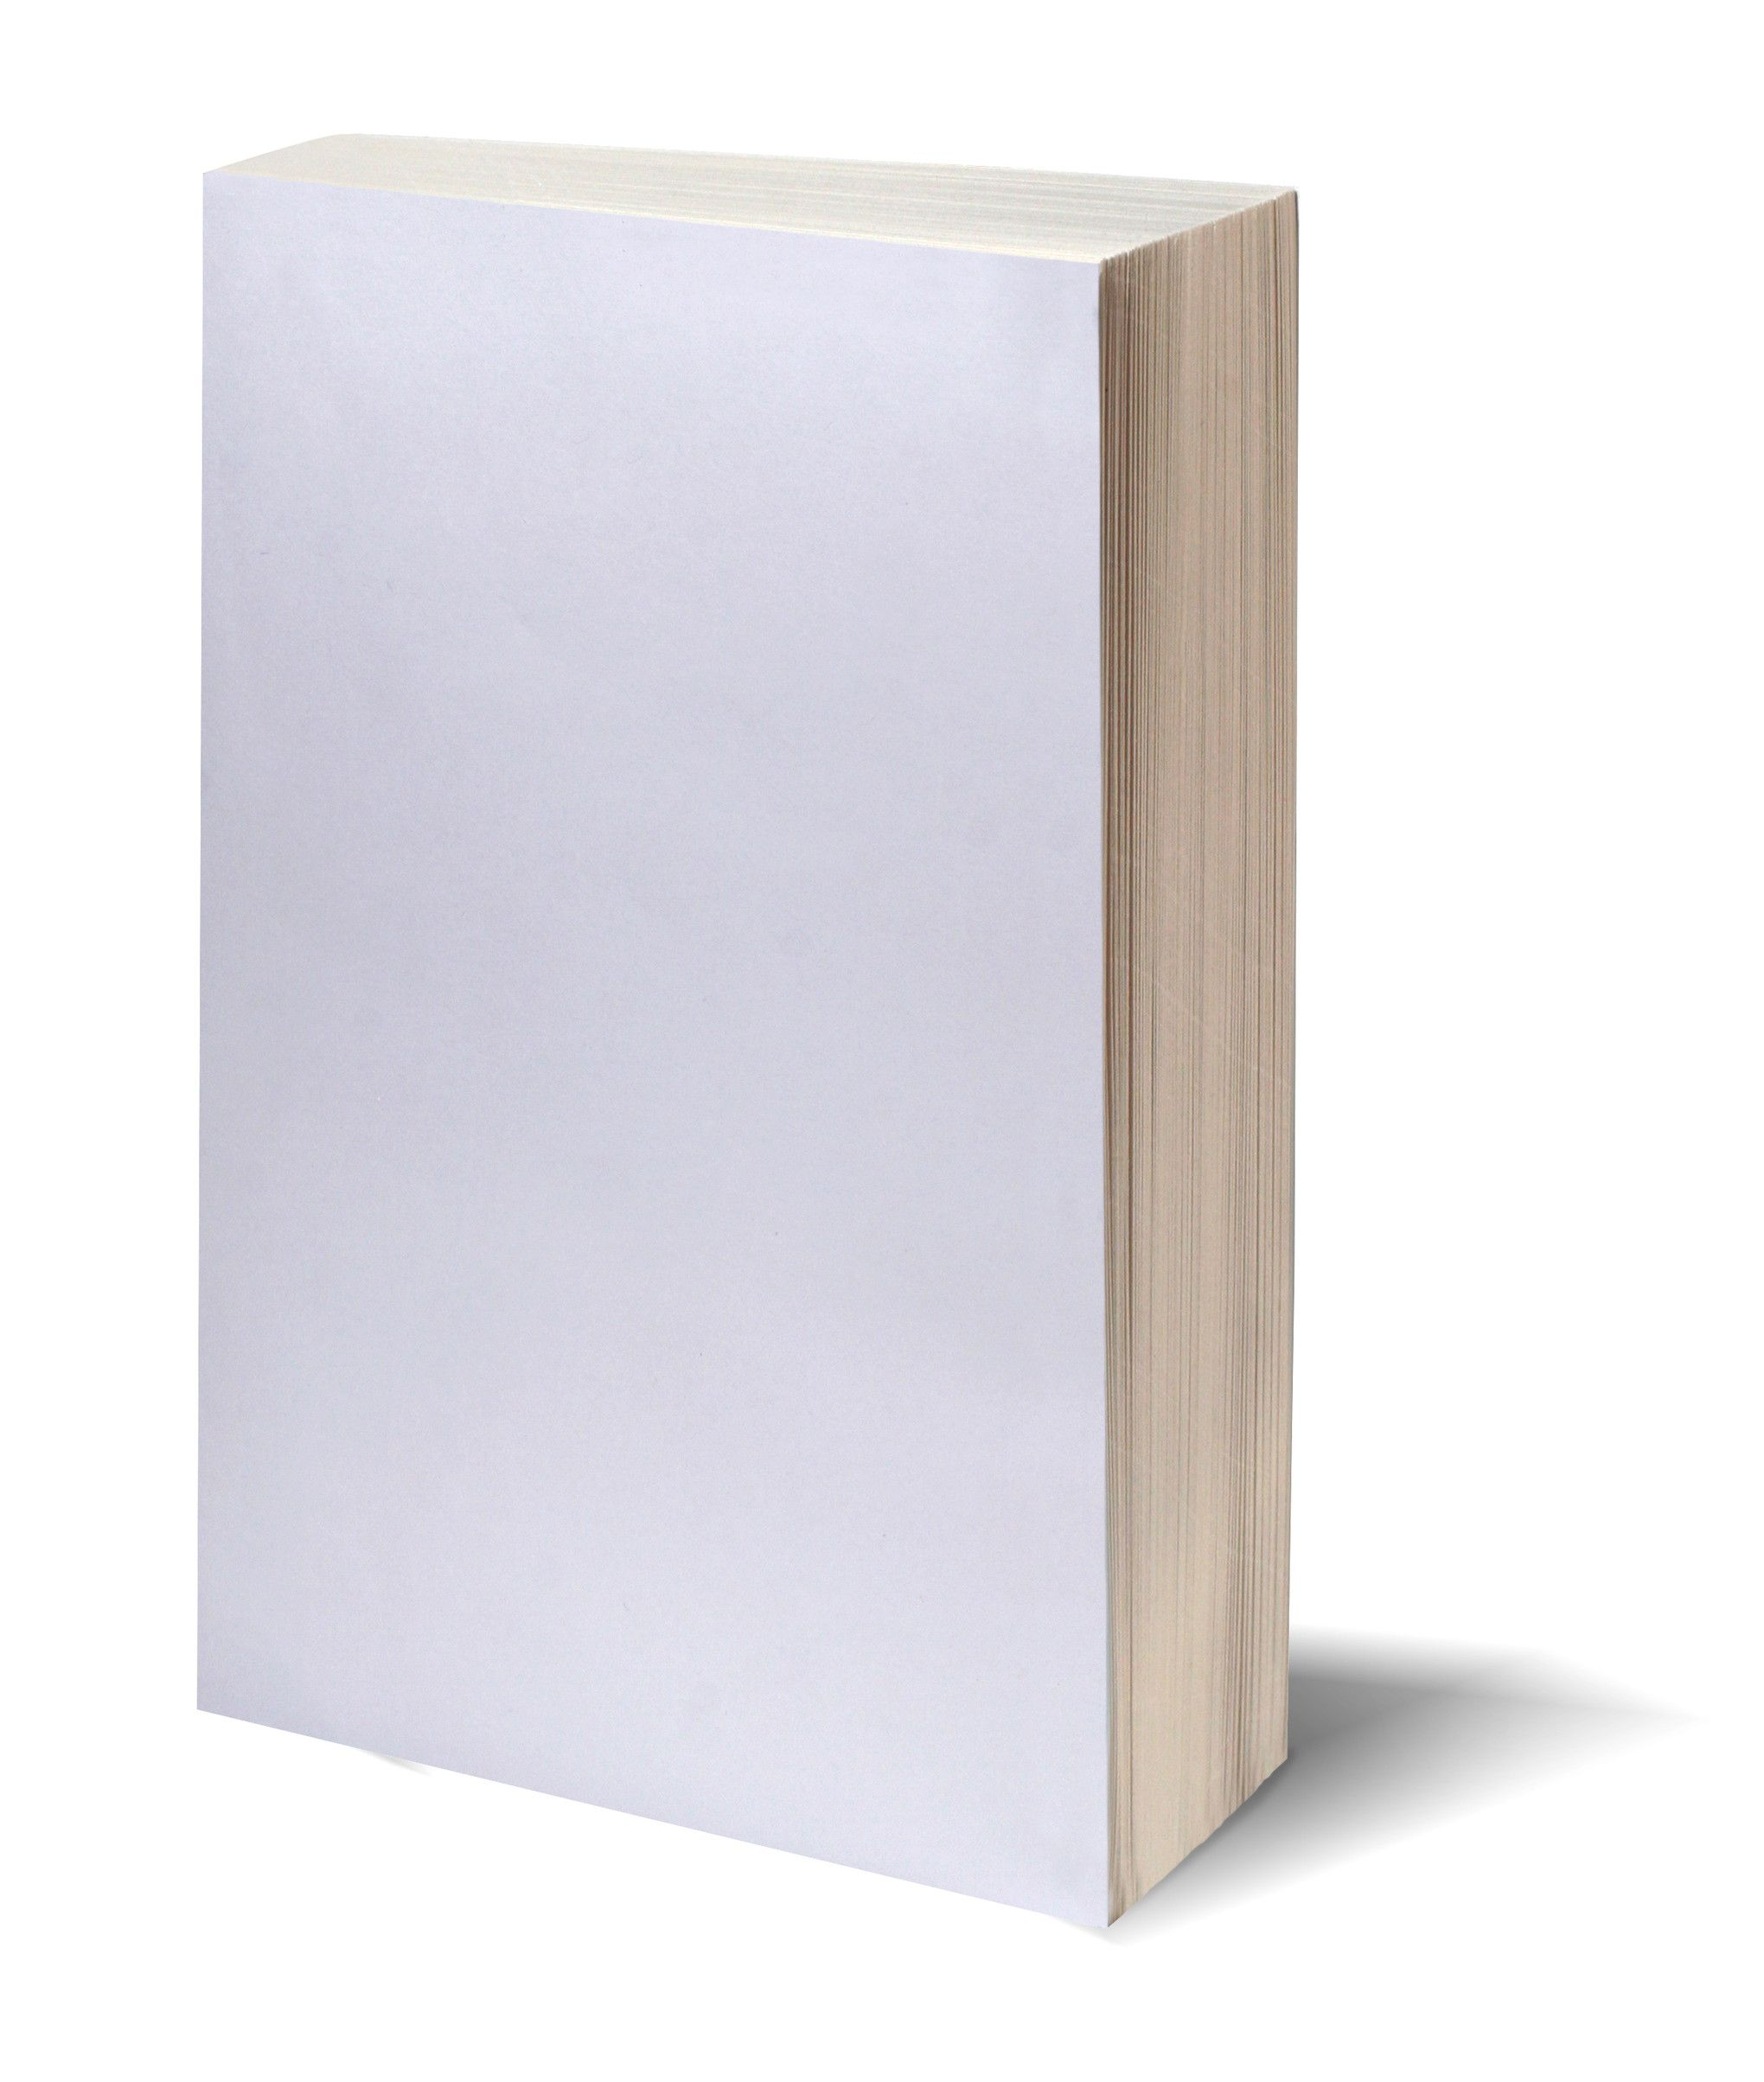 Blank Book Cover Book Cover Design Free Mockup Book